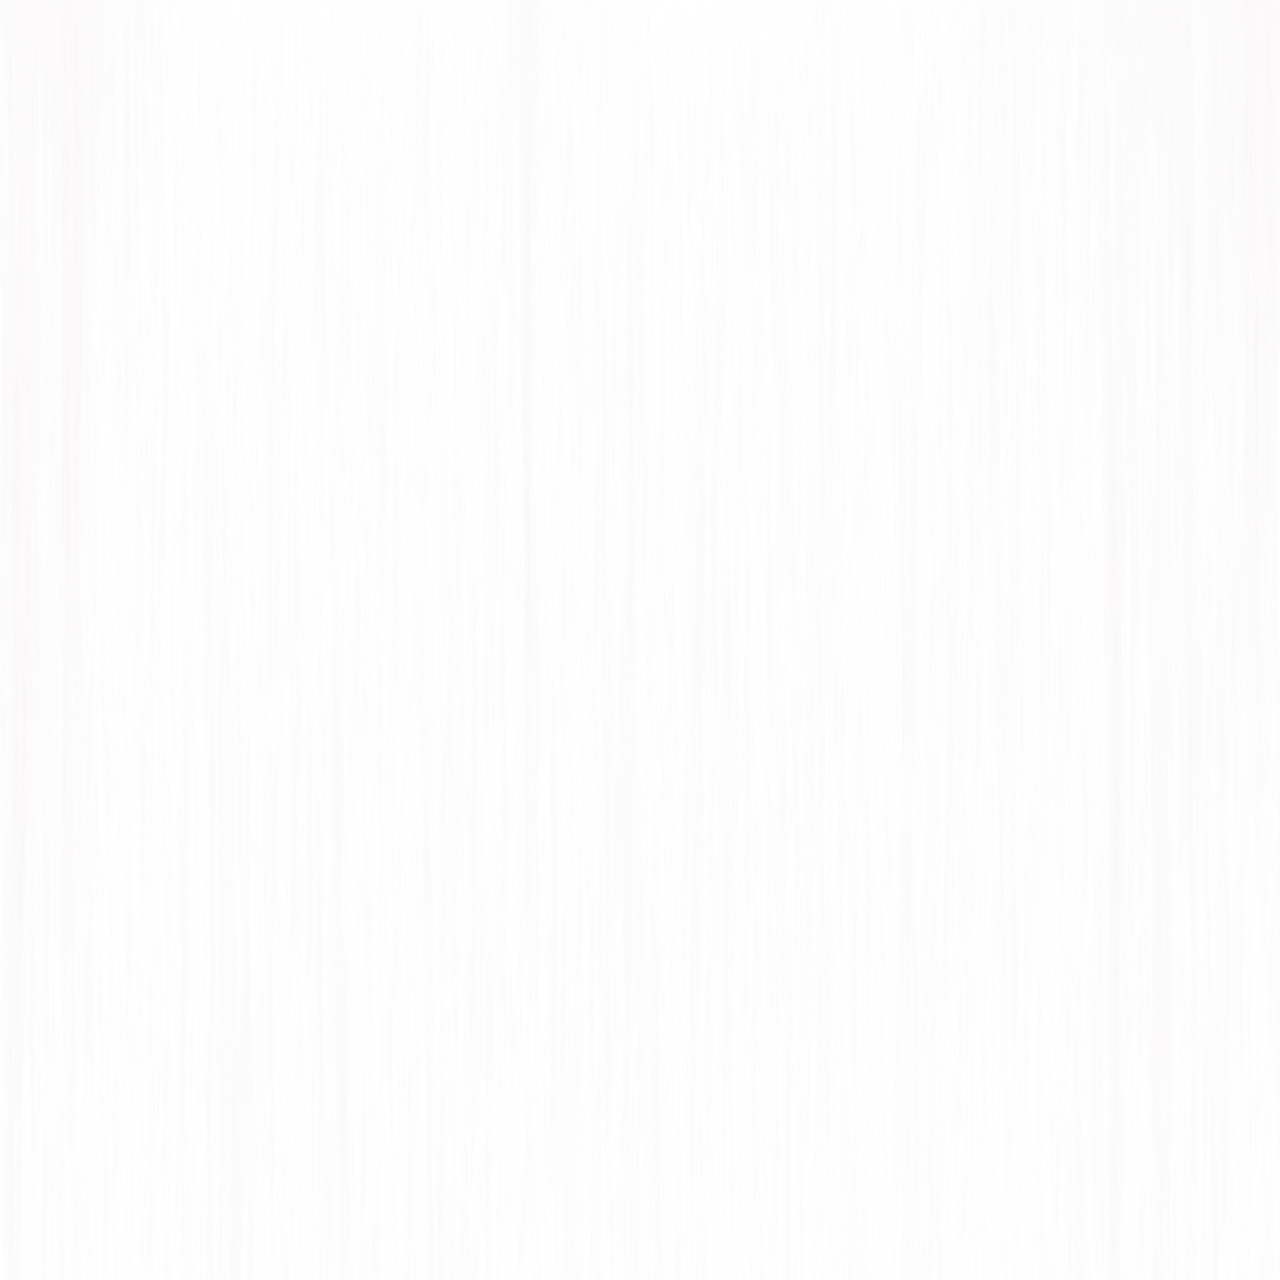 Png Invisible Background 6